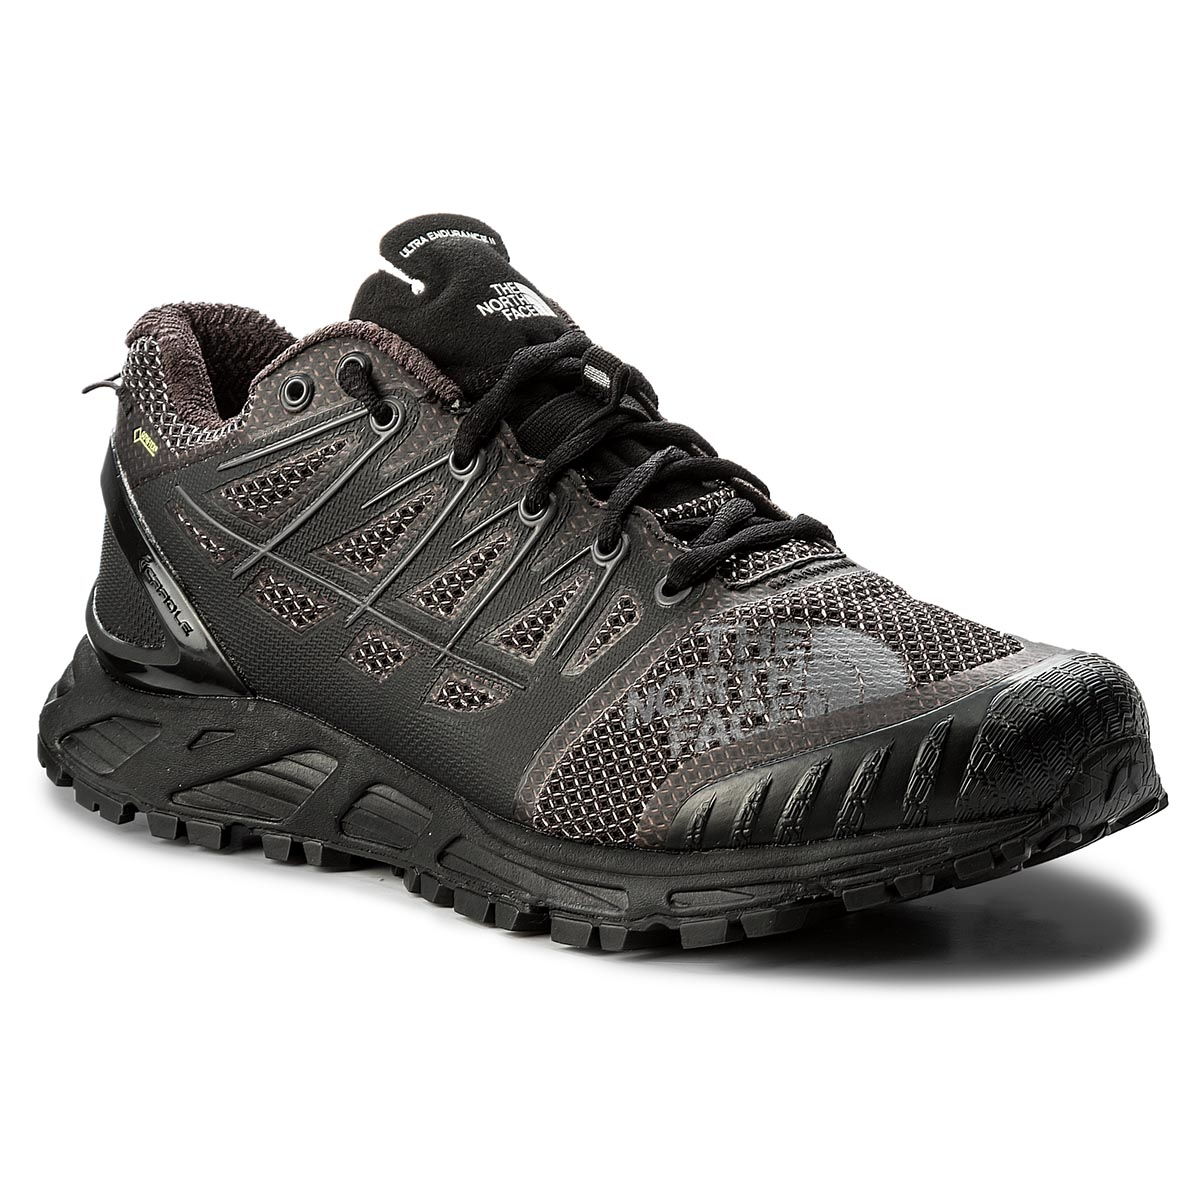 Buty THE NORTH FACE - Ultra Endurance II Gtx GORE-TEX T93FXT4PD Tnf Black/Blackened Pearl